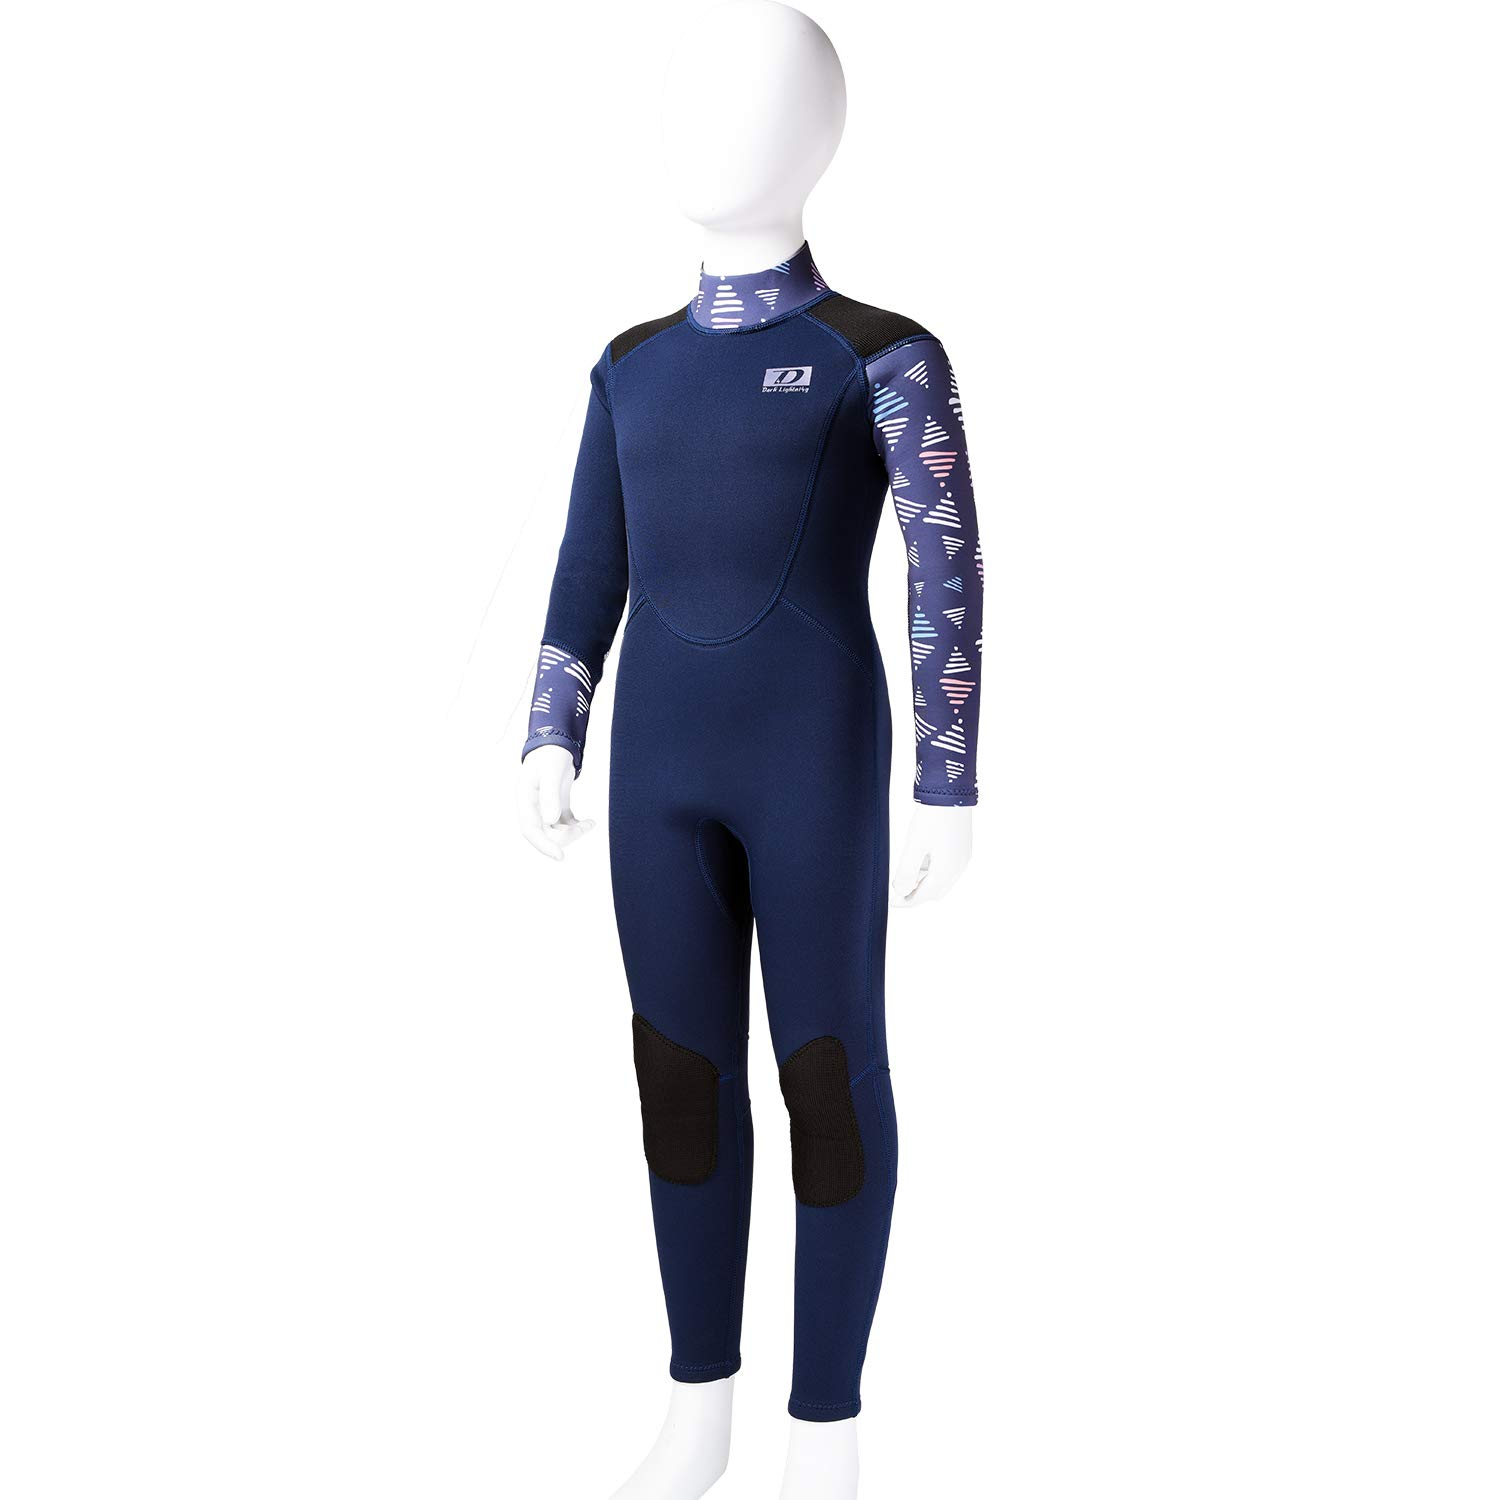 Dark Lightning Youth 3/2mm Wetsuit, 2019 Neoprene Thermal Swimsuit, Girl's One Piece Wet Suits for Professionally Scuba Diving, Full Body Teenage Suit, Size 10 by Dark Lightning